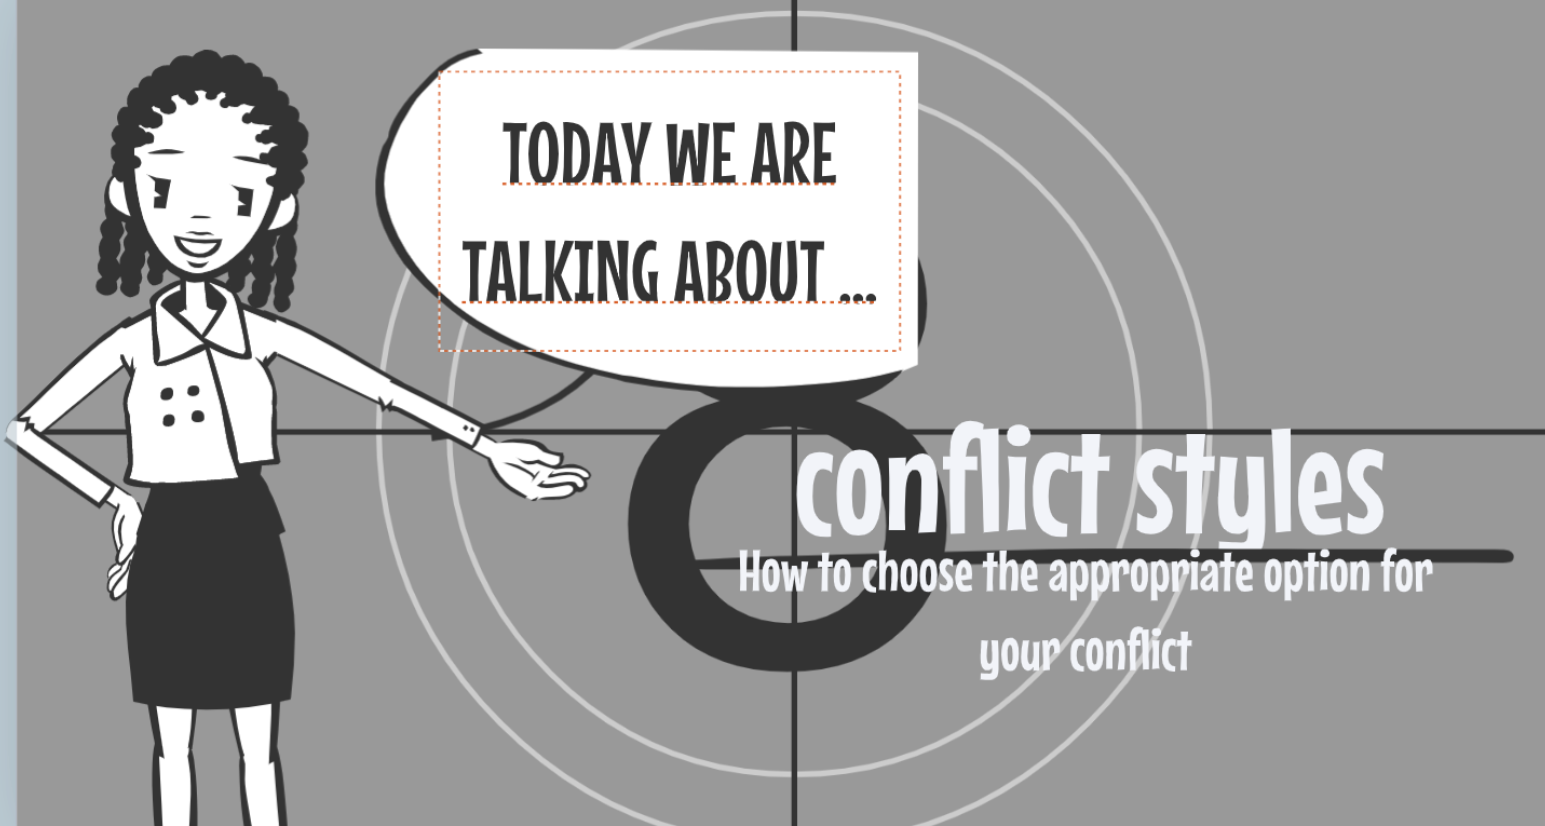 conflict styles pic vyond